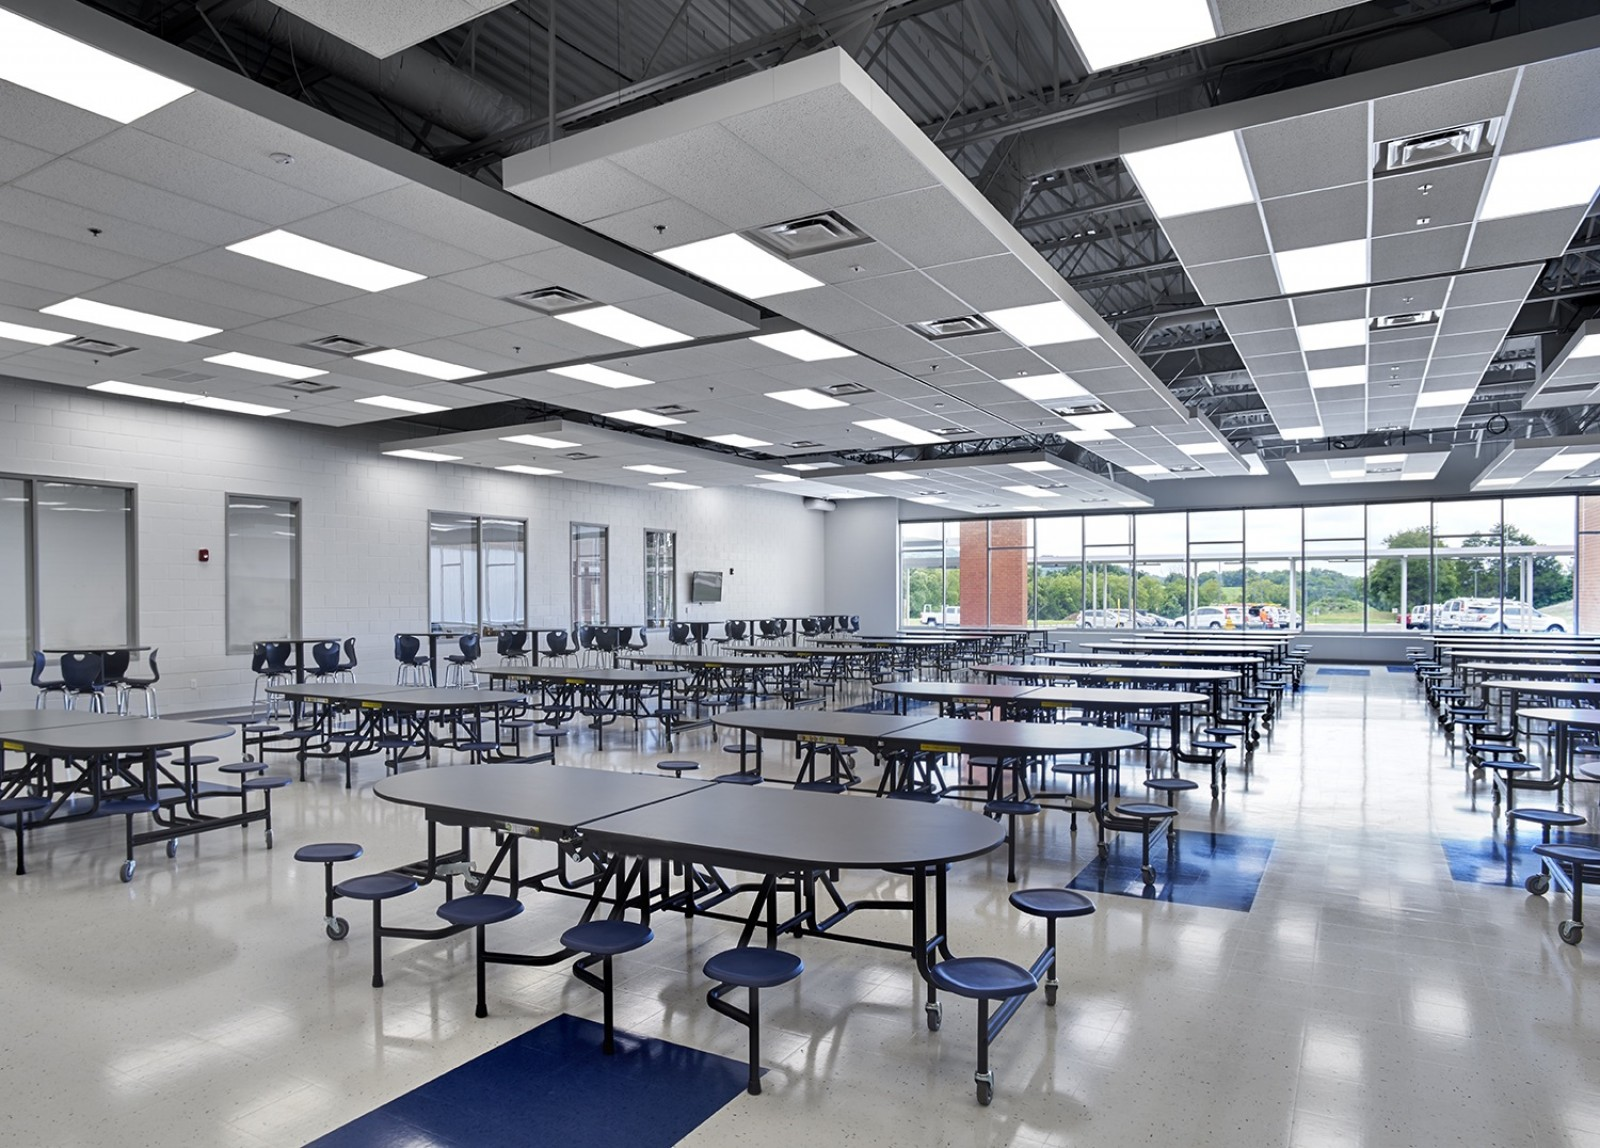 Hardin Valley Middle School - Cafeteria